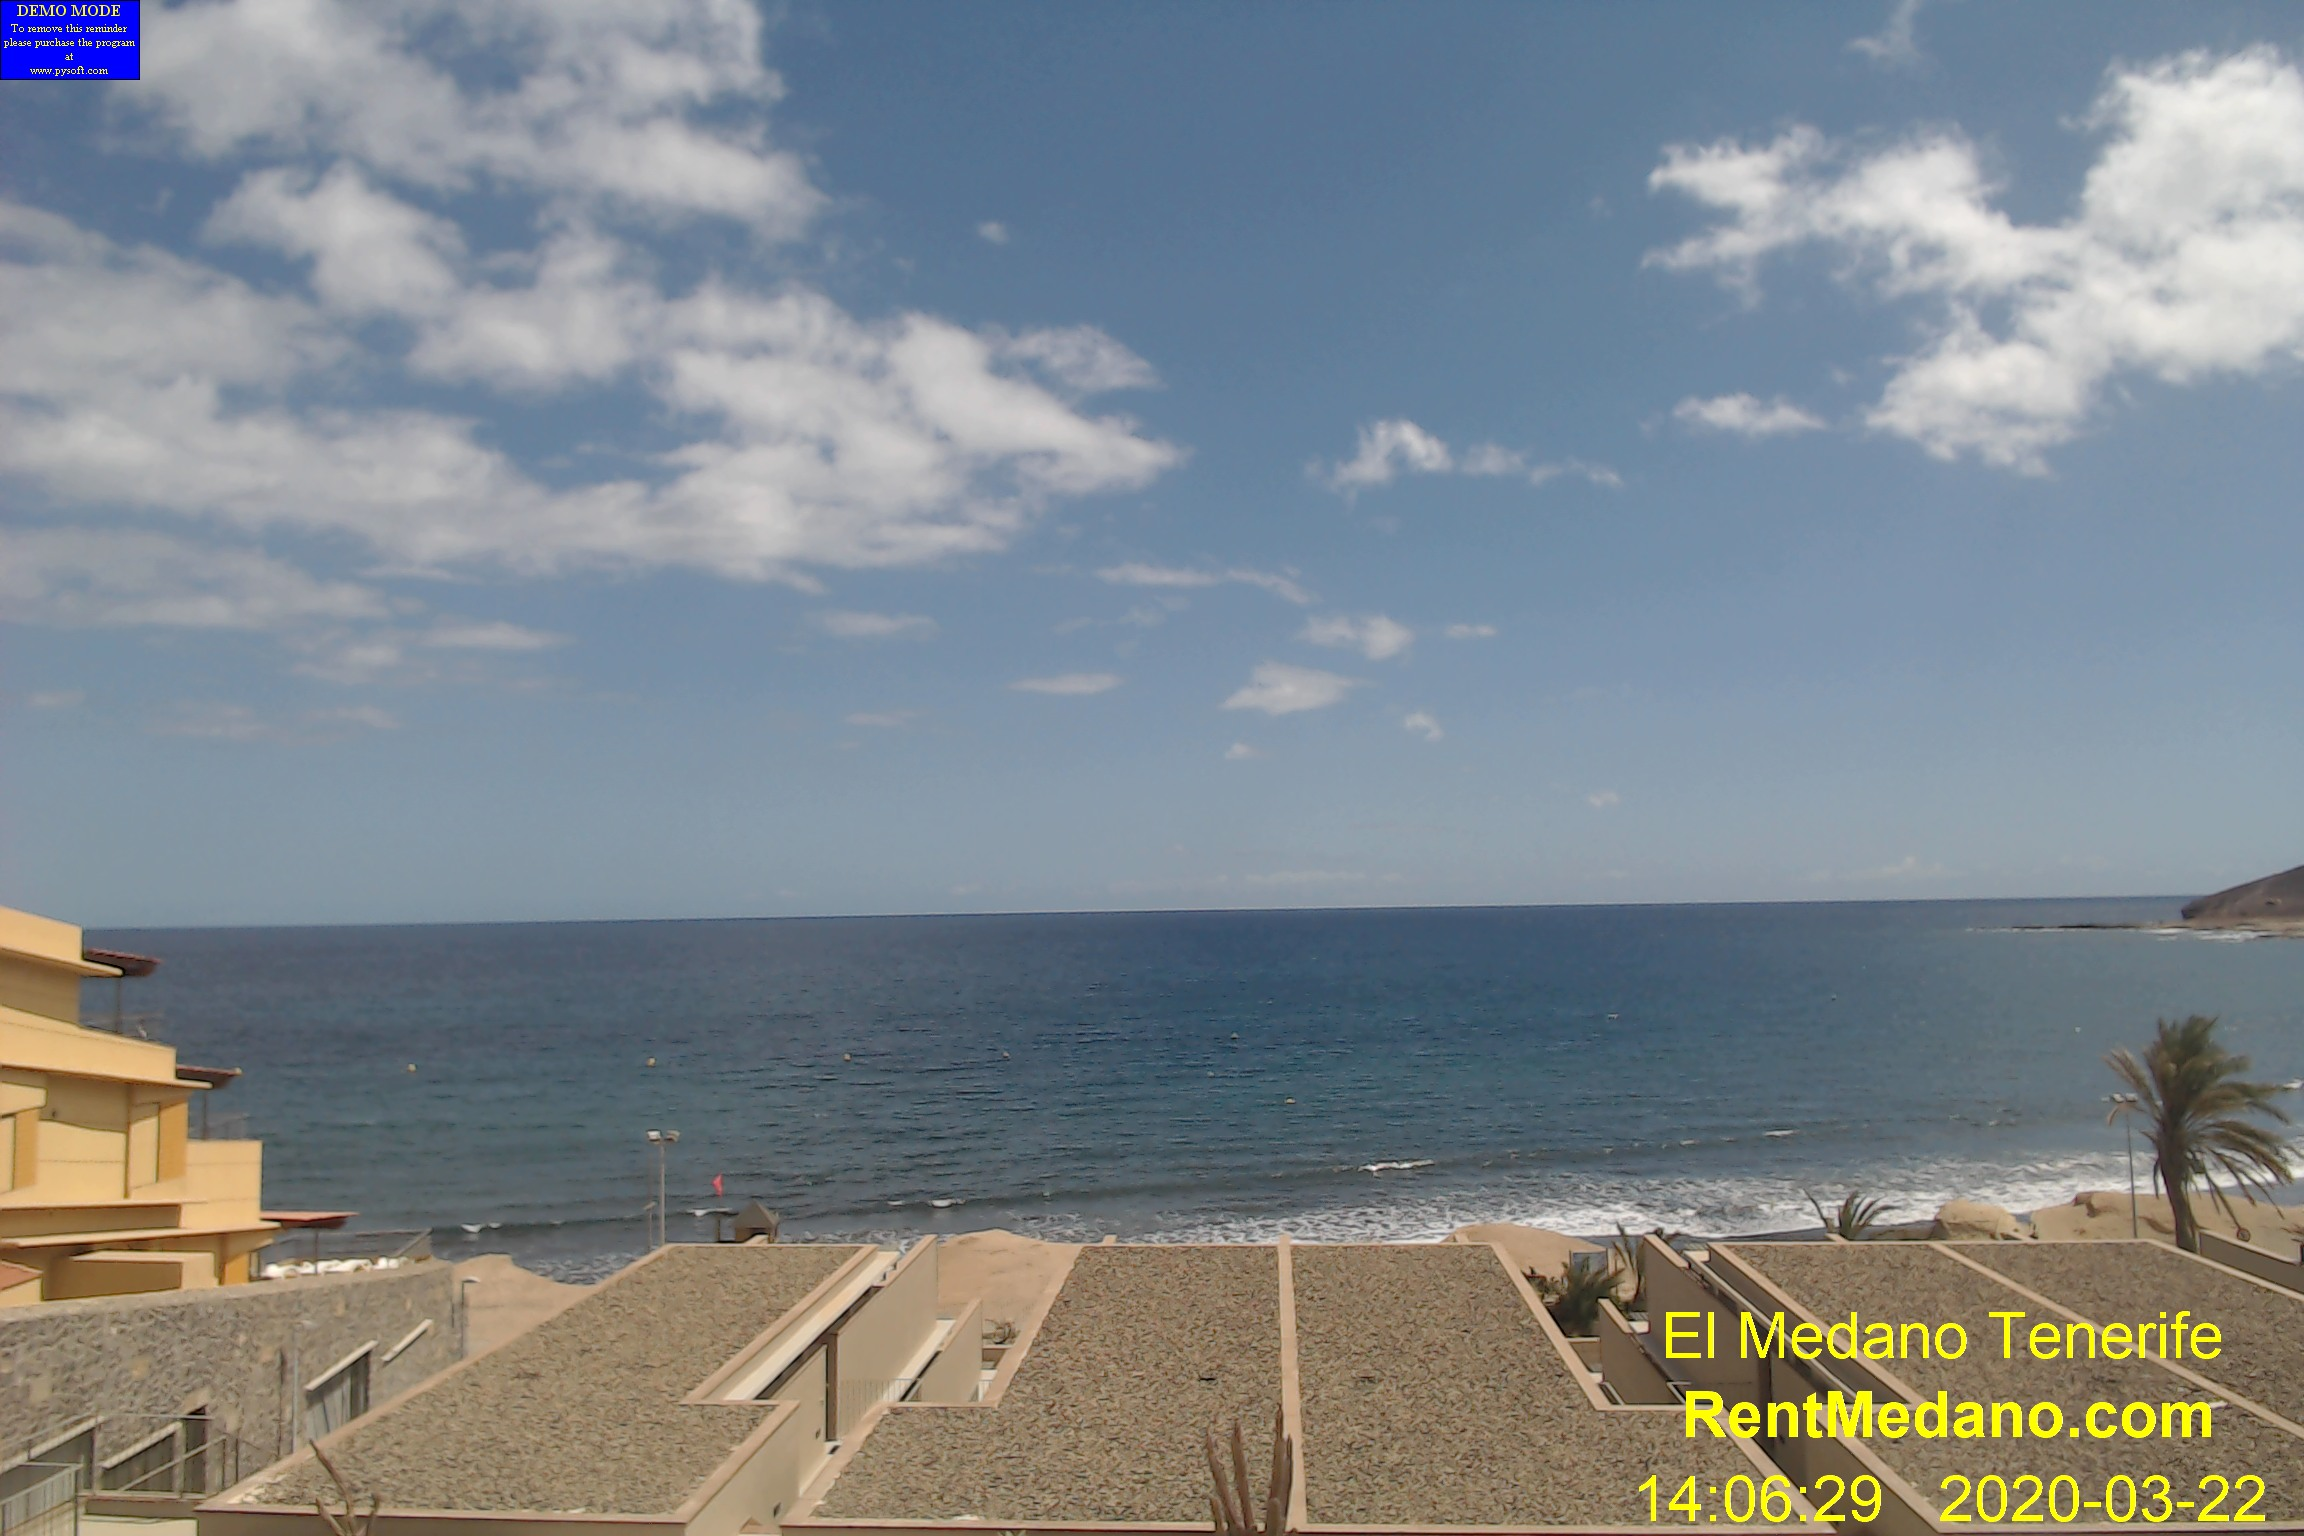 El Medano Ocean View WebCAm